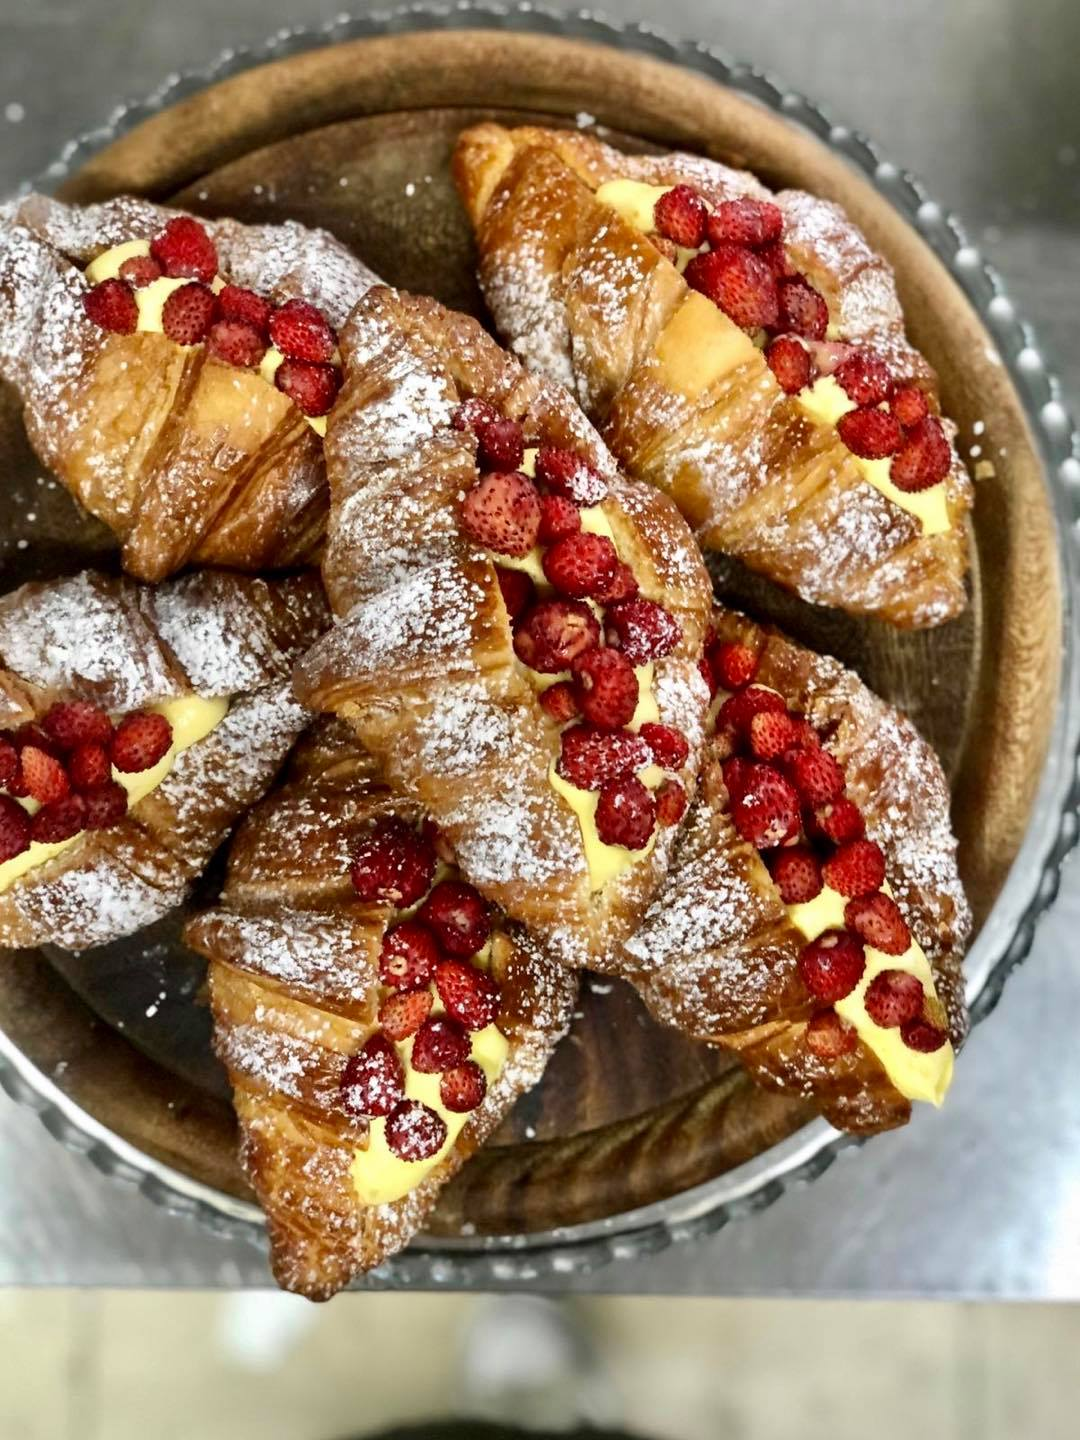 pasticcerie_delivery_roma_cafe_merenda